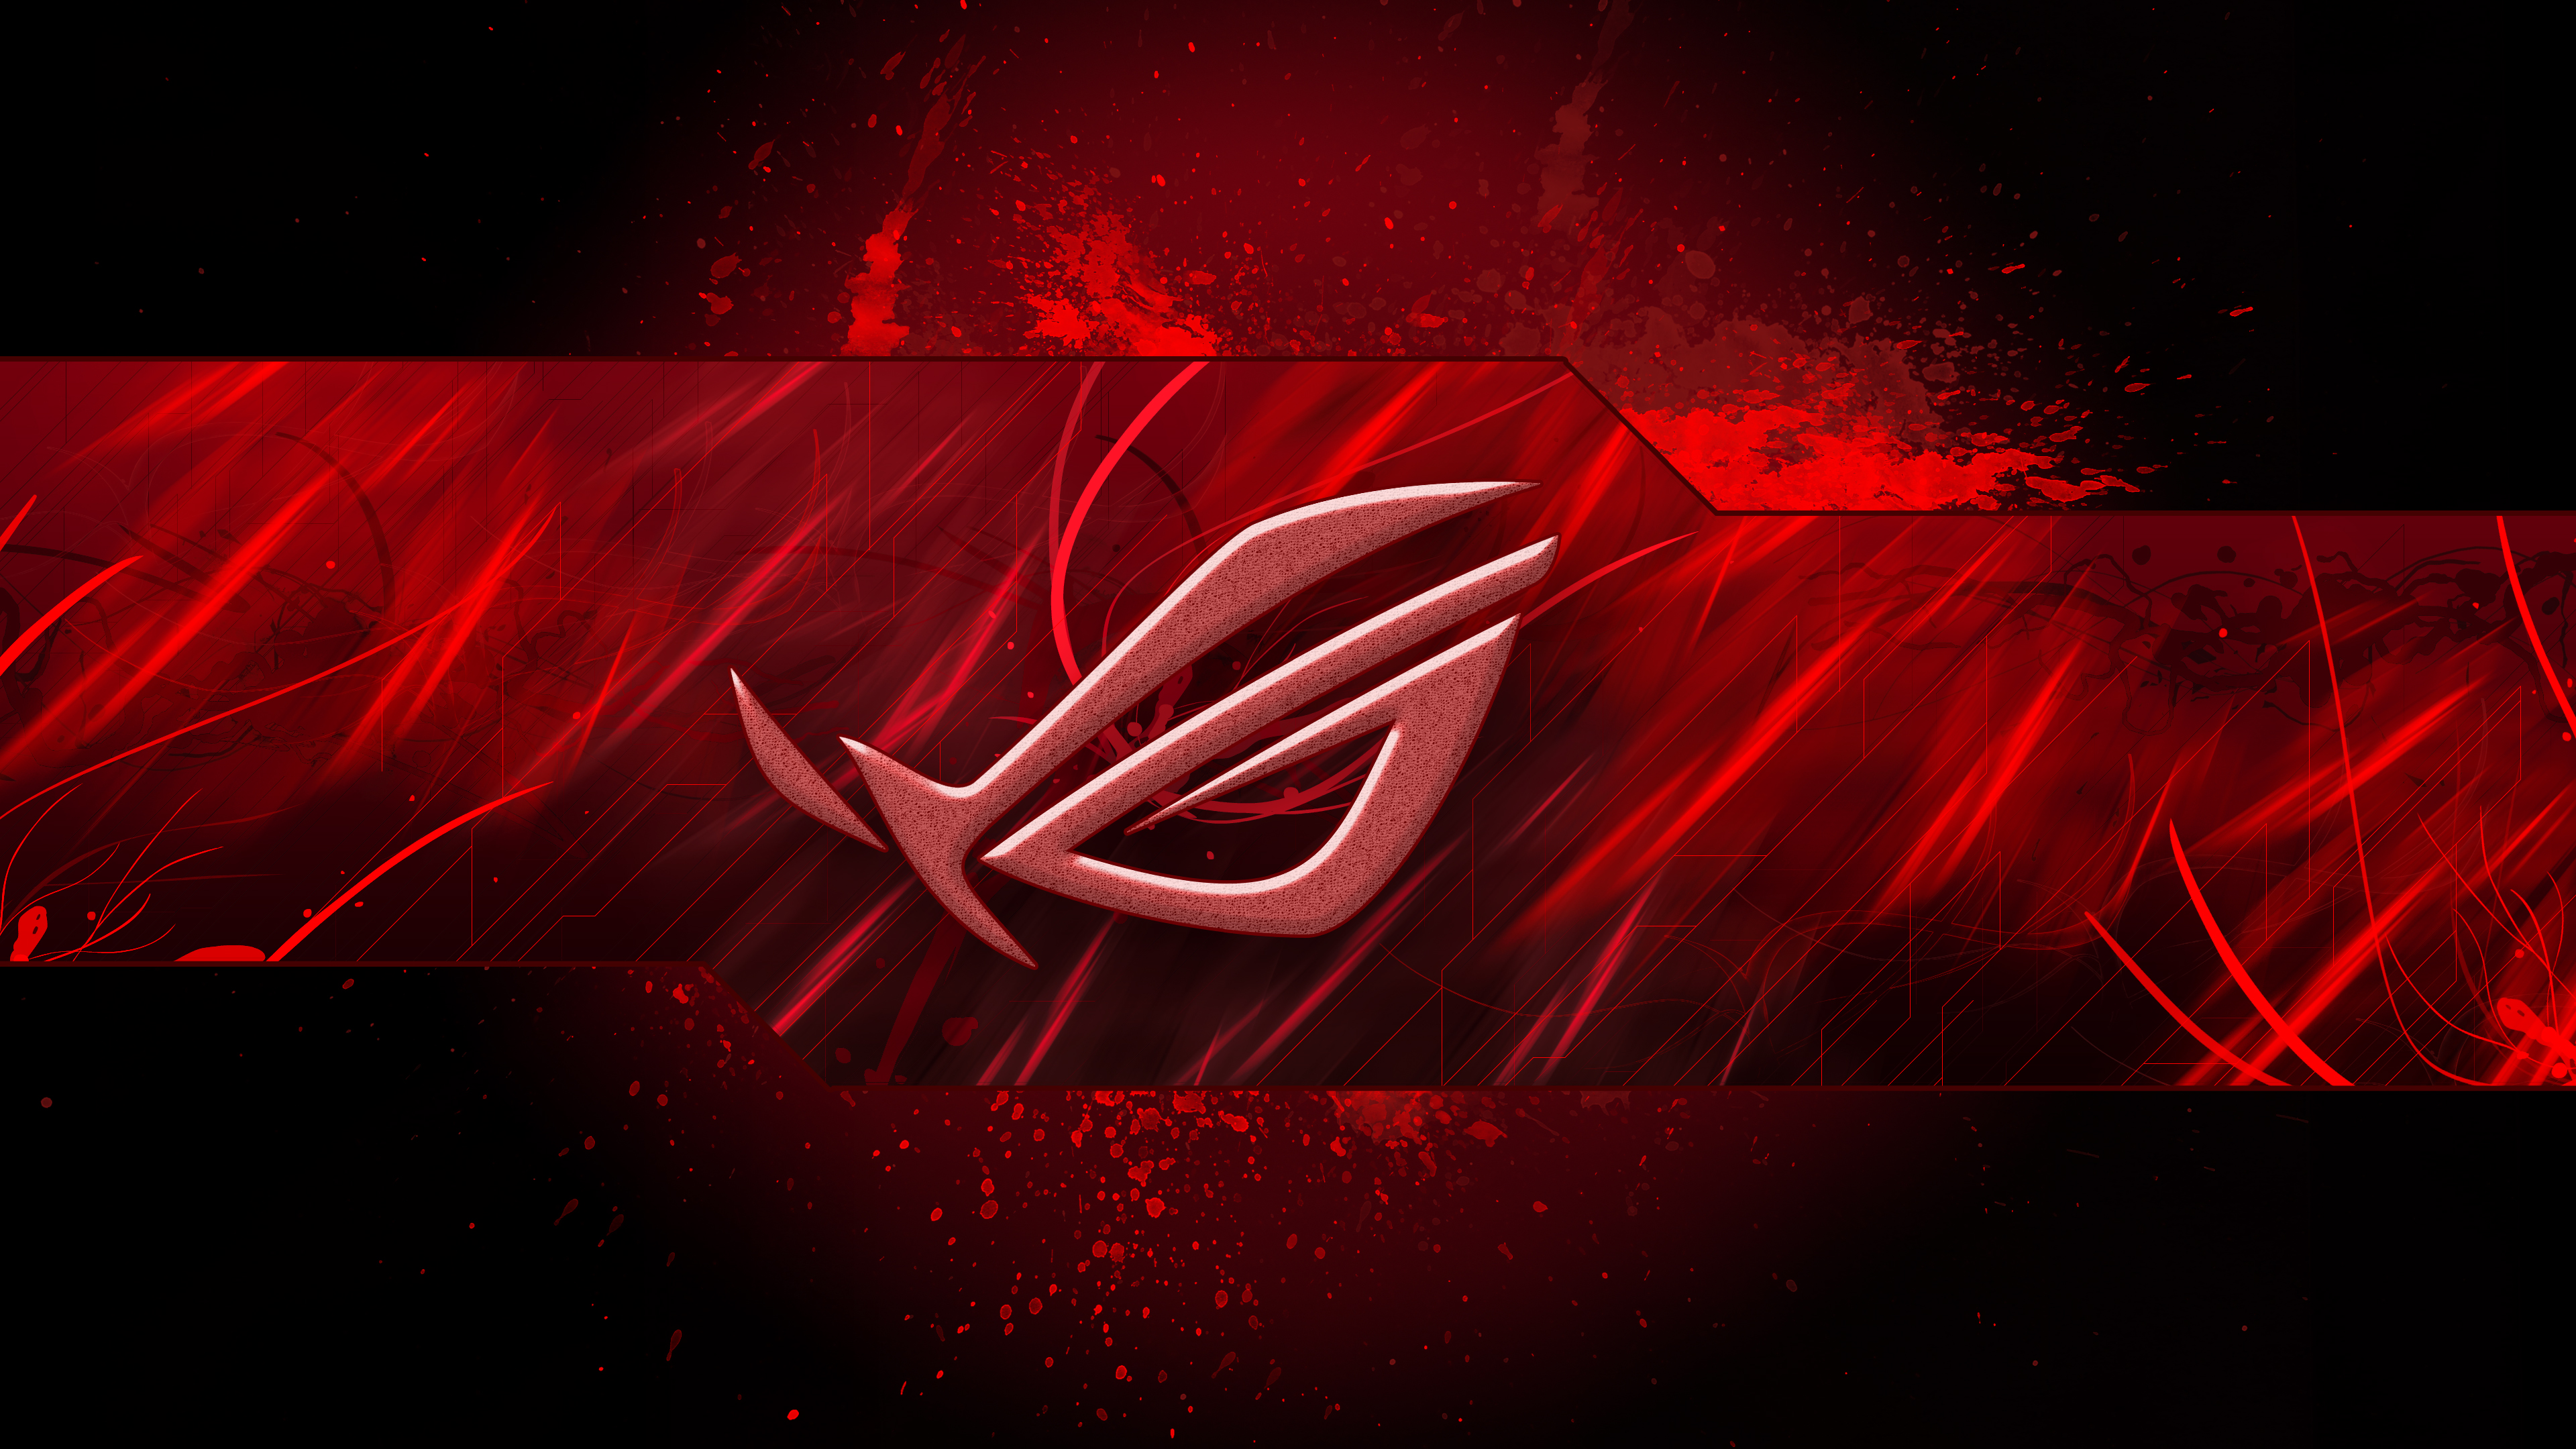 Asus Rog Wallpaper: ASUS ROG 4K Wallpaper